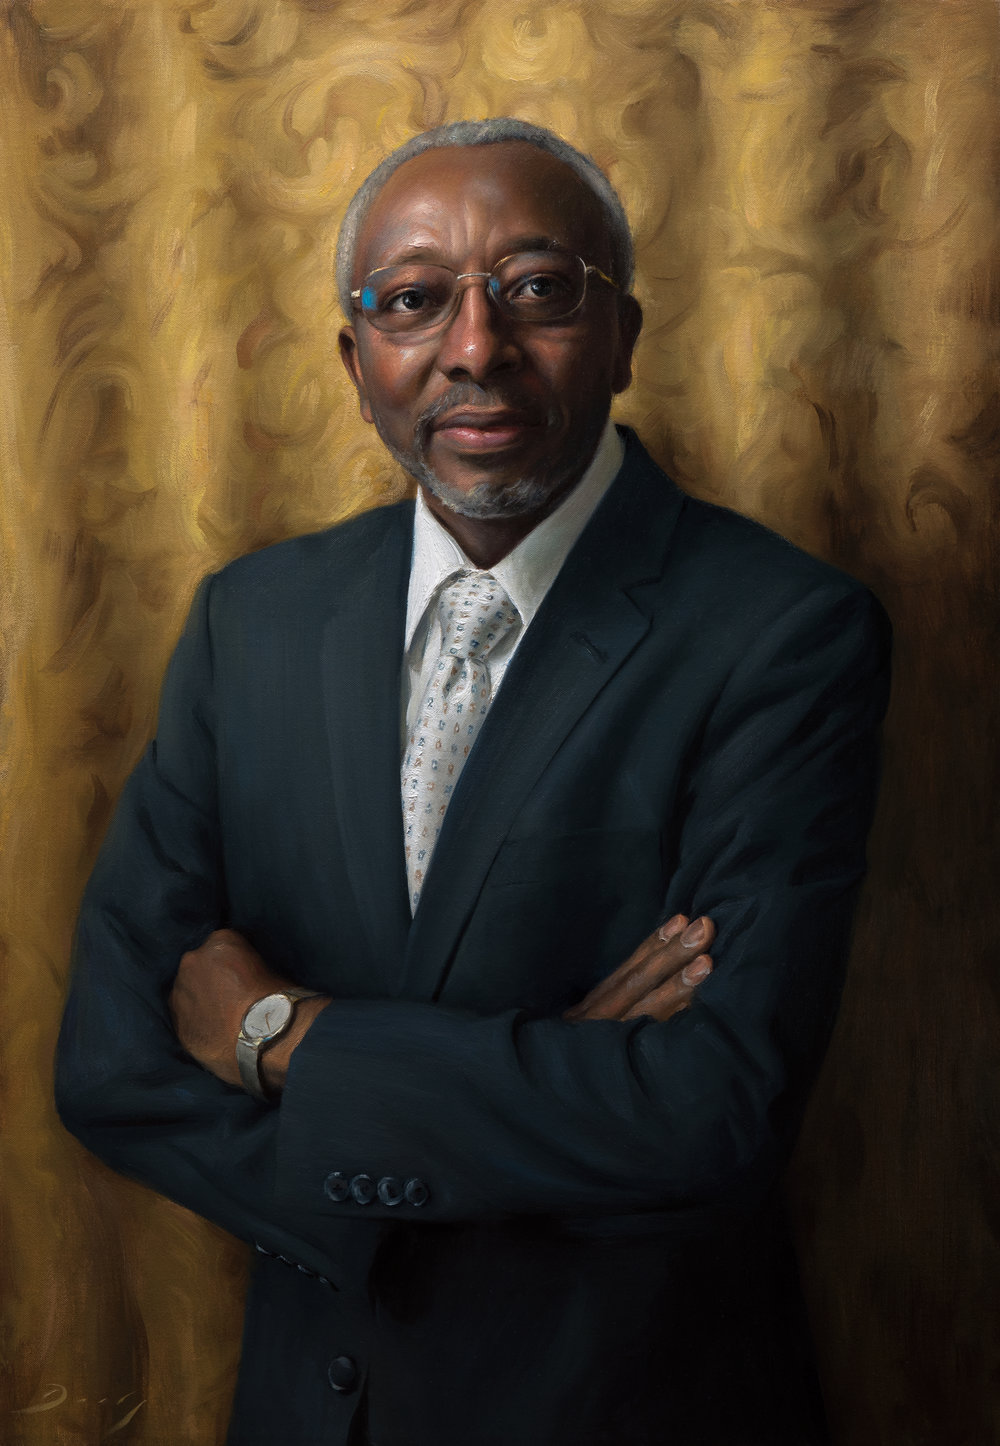 Dr. Lewis, 23x33, by Joseph Daily